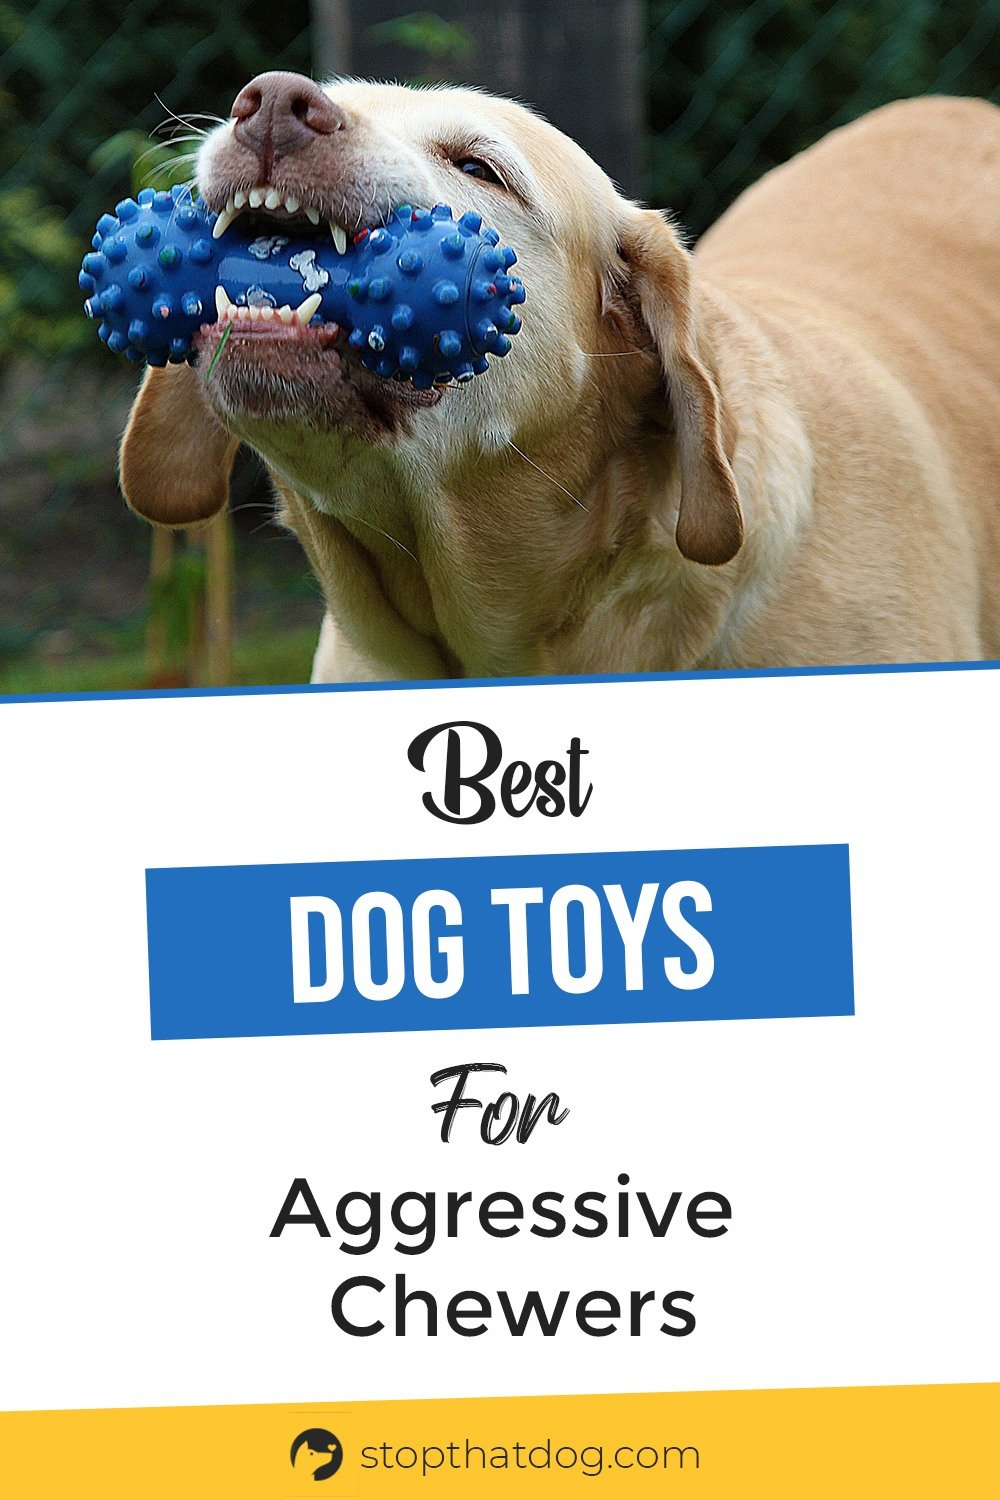 Looking for the best tough toys for aggressive chewers? If so, our guide reveals all the top options that\'ll withstand a strong chewer without any problem.